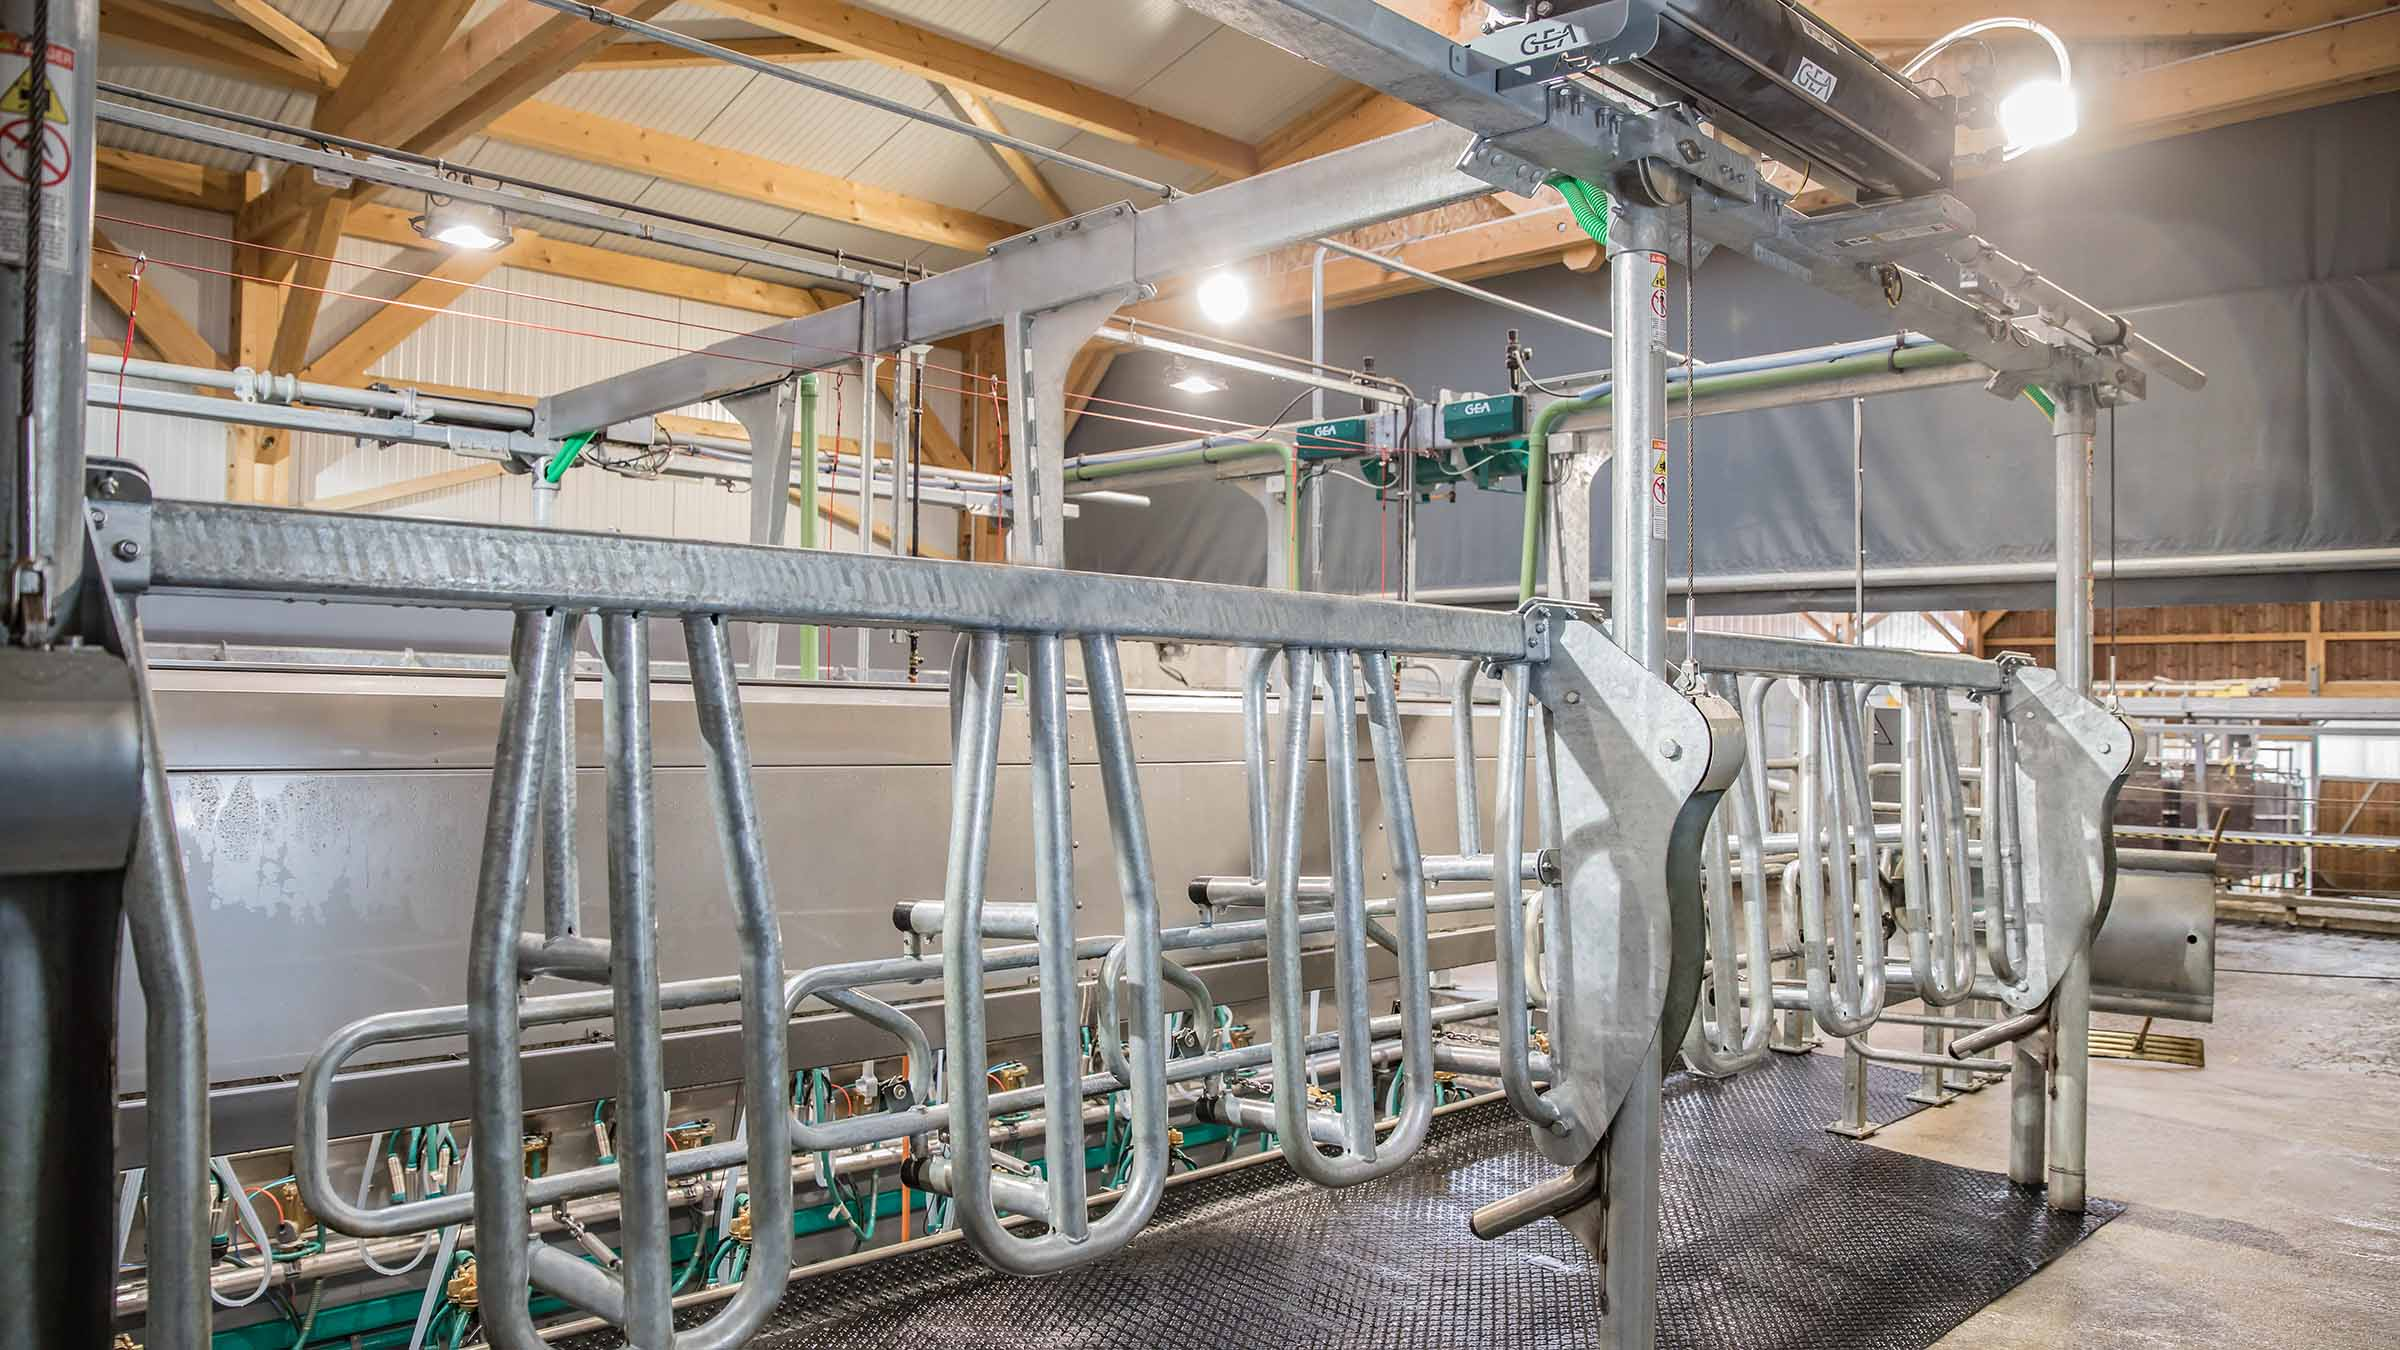 GEA DairyParlor P7550 vl vertical lift side-by-side conventional milking parlor exit gate